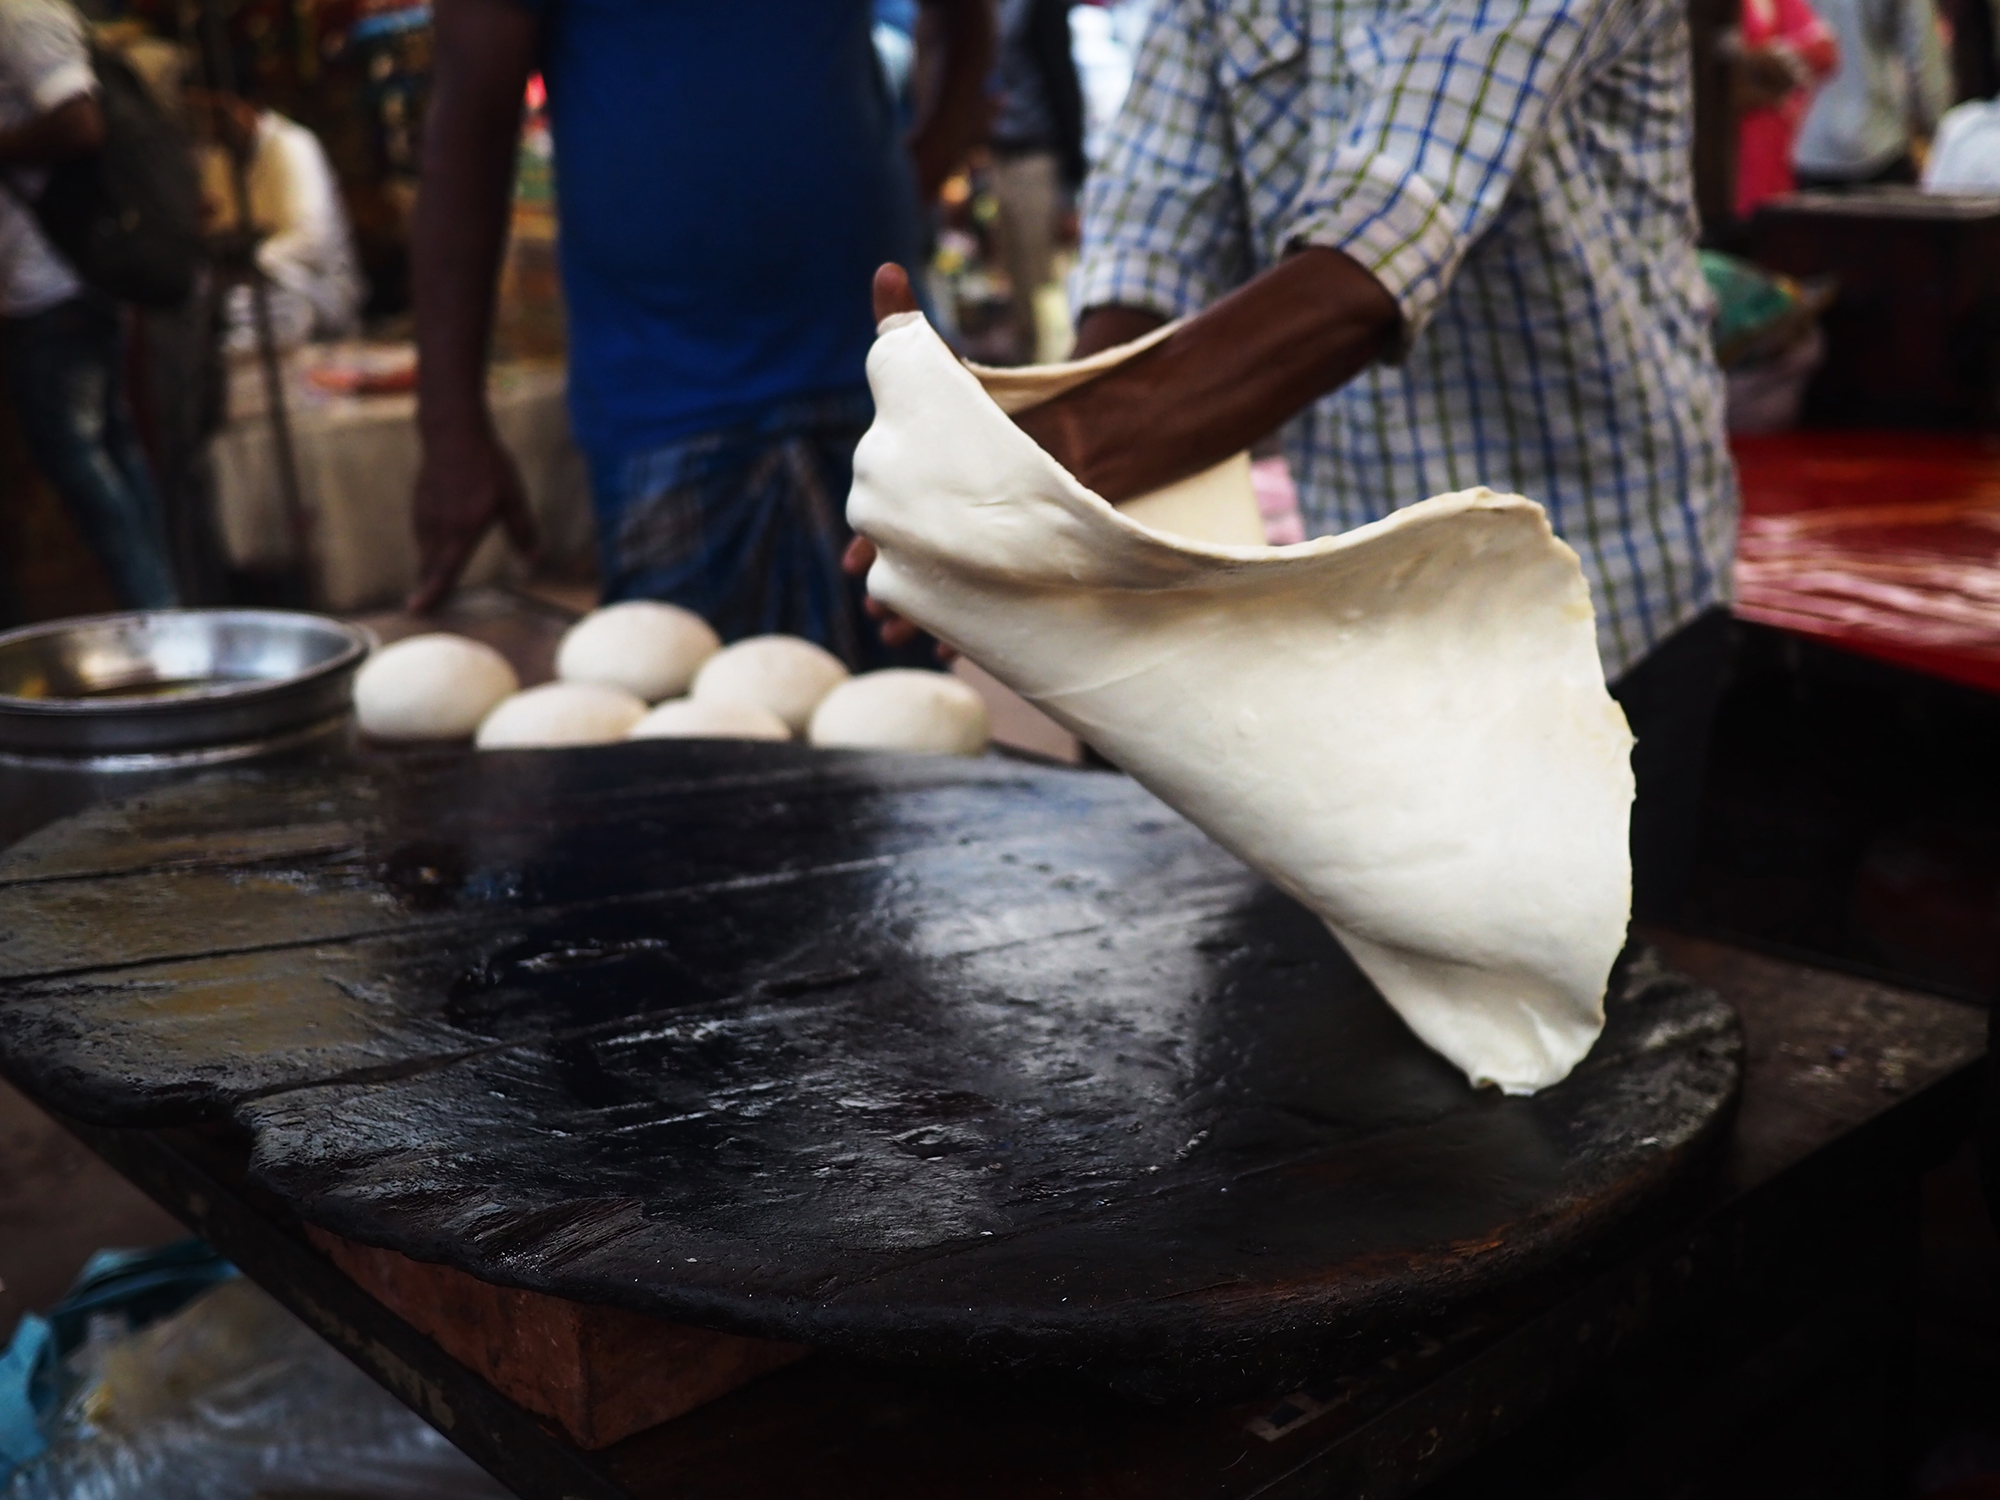 Preparing the enormous, fried, sweet rotis that are eaten with halwa.